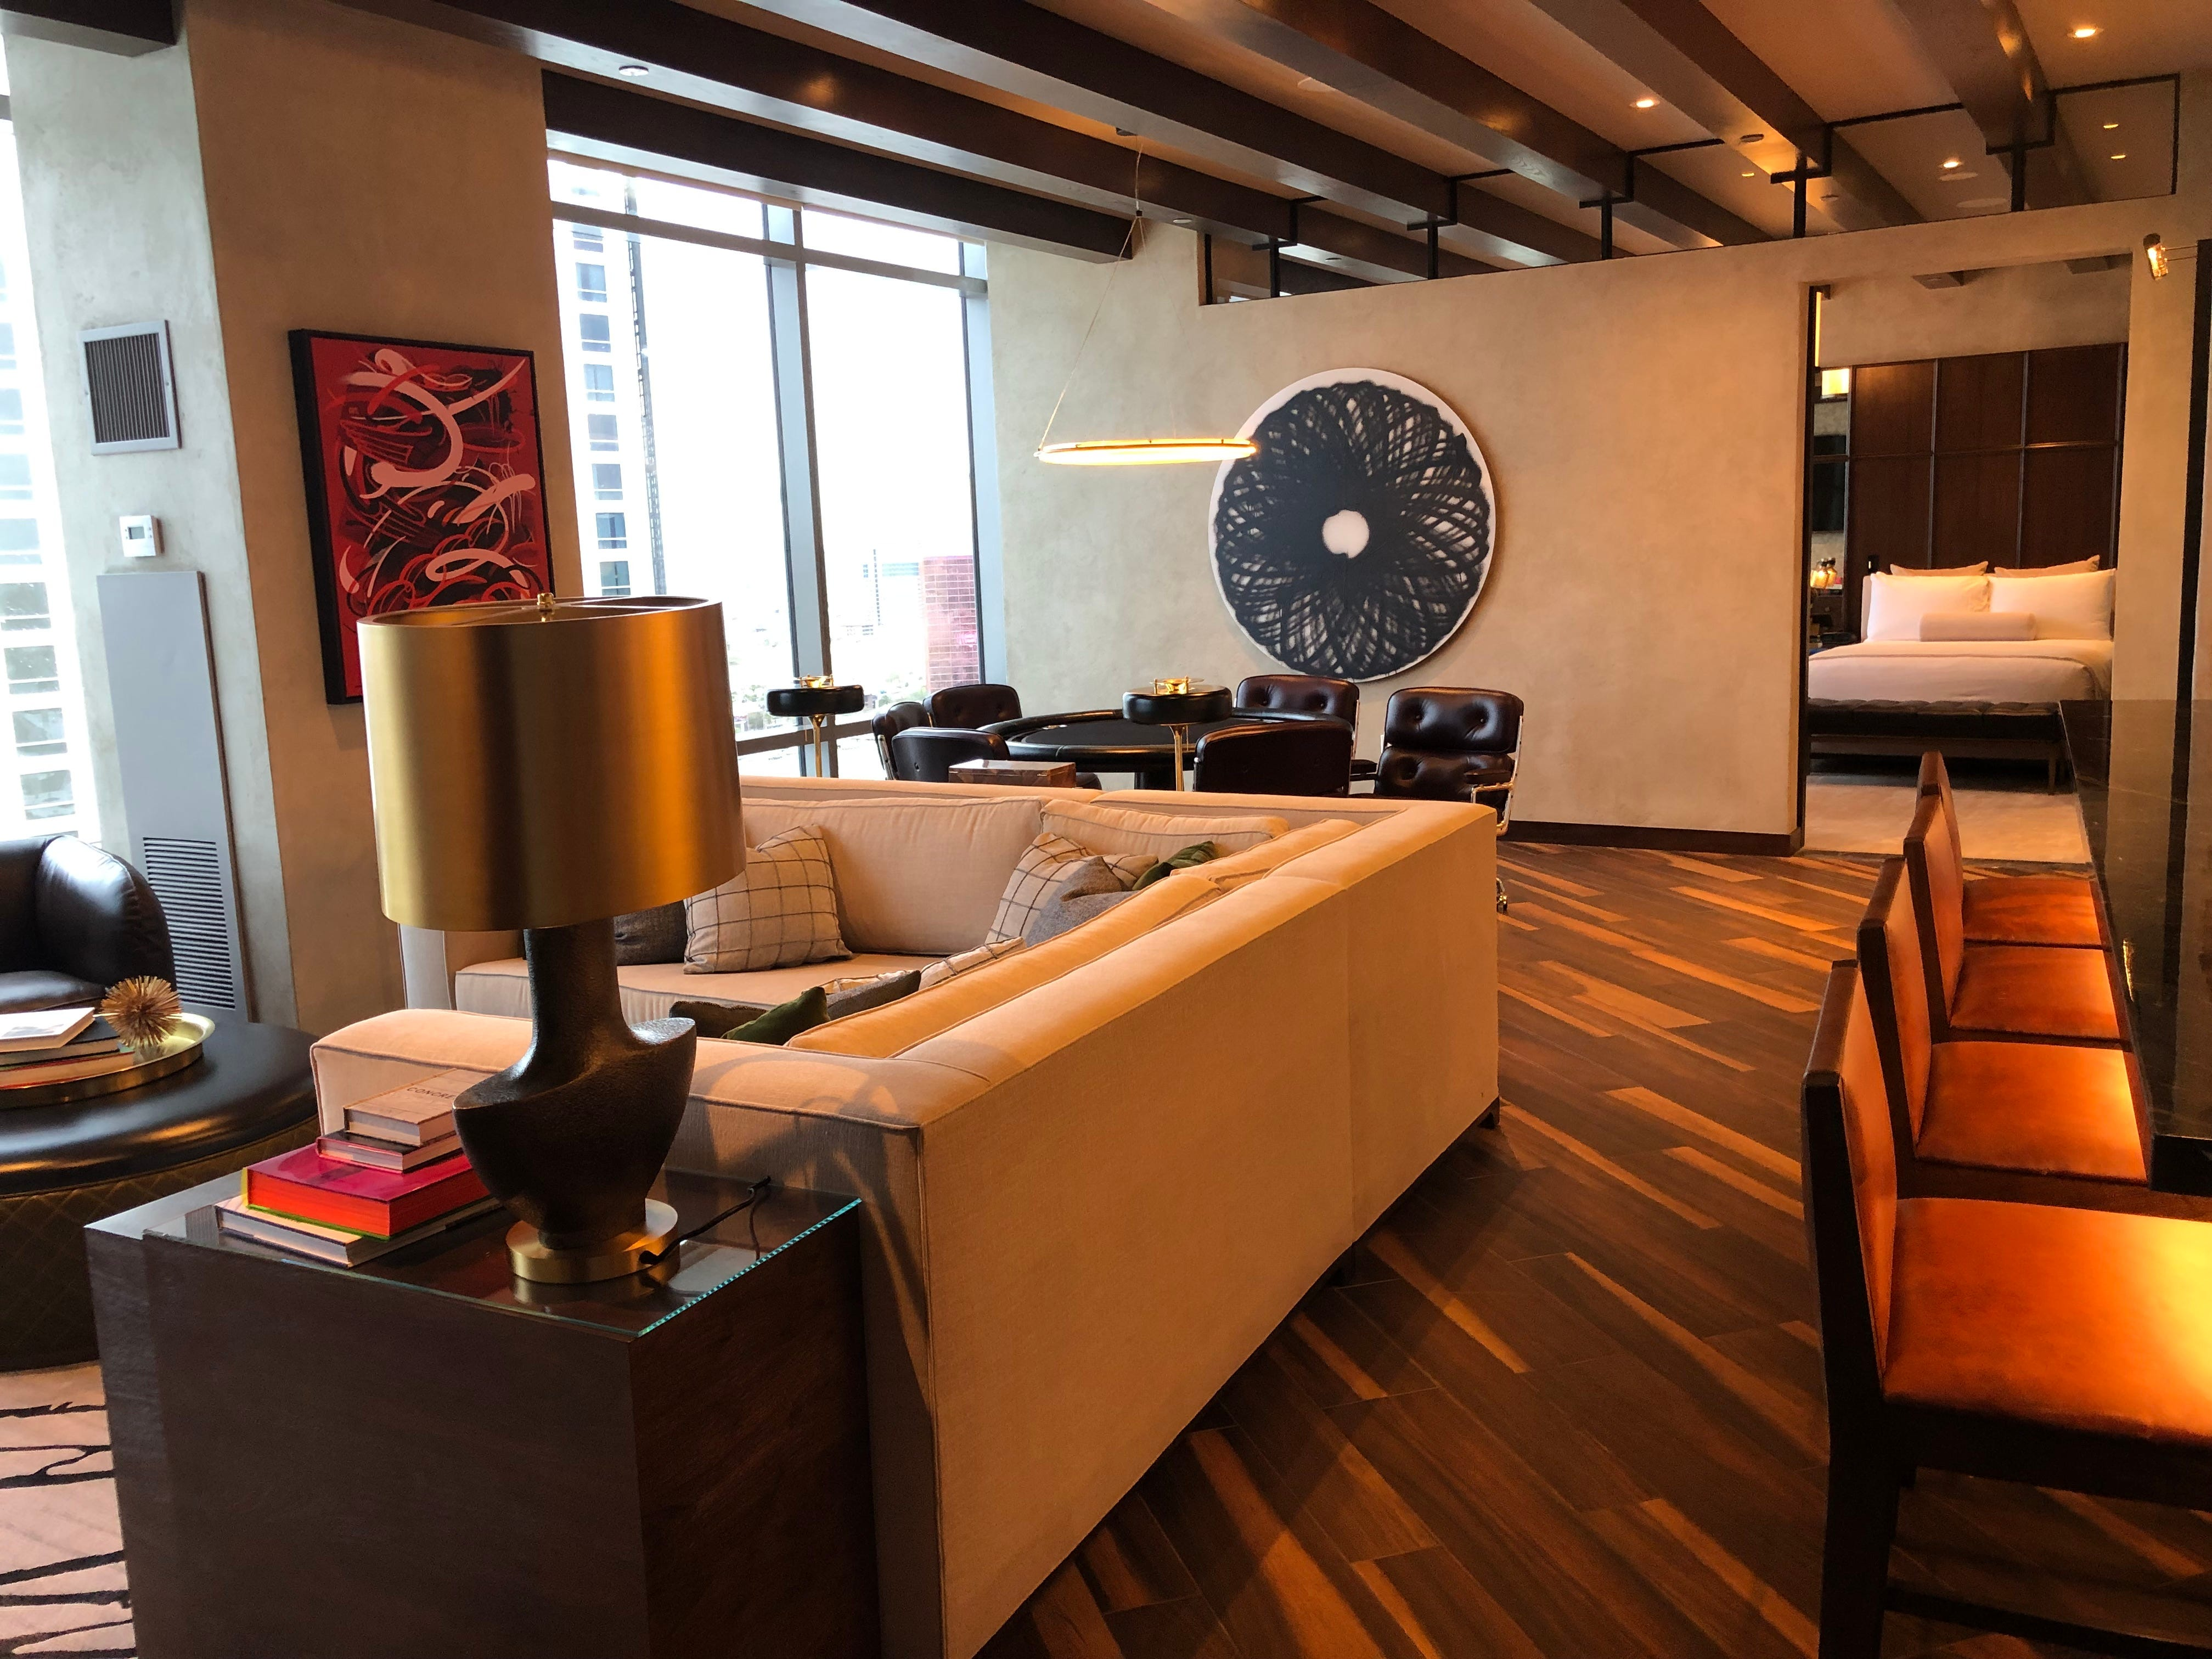 Suite in the Palms Casino Resort in Las Vegas. It has two bedrooms and is designed to accommodate groups.